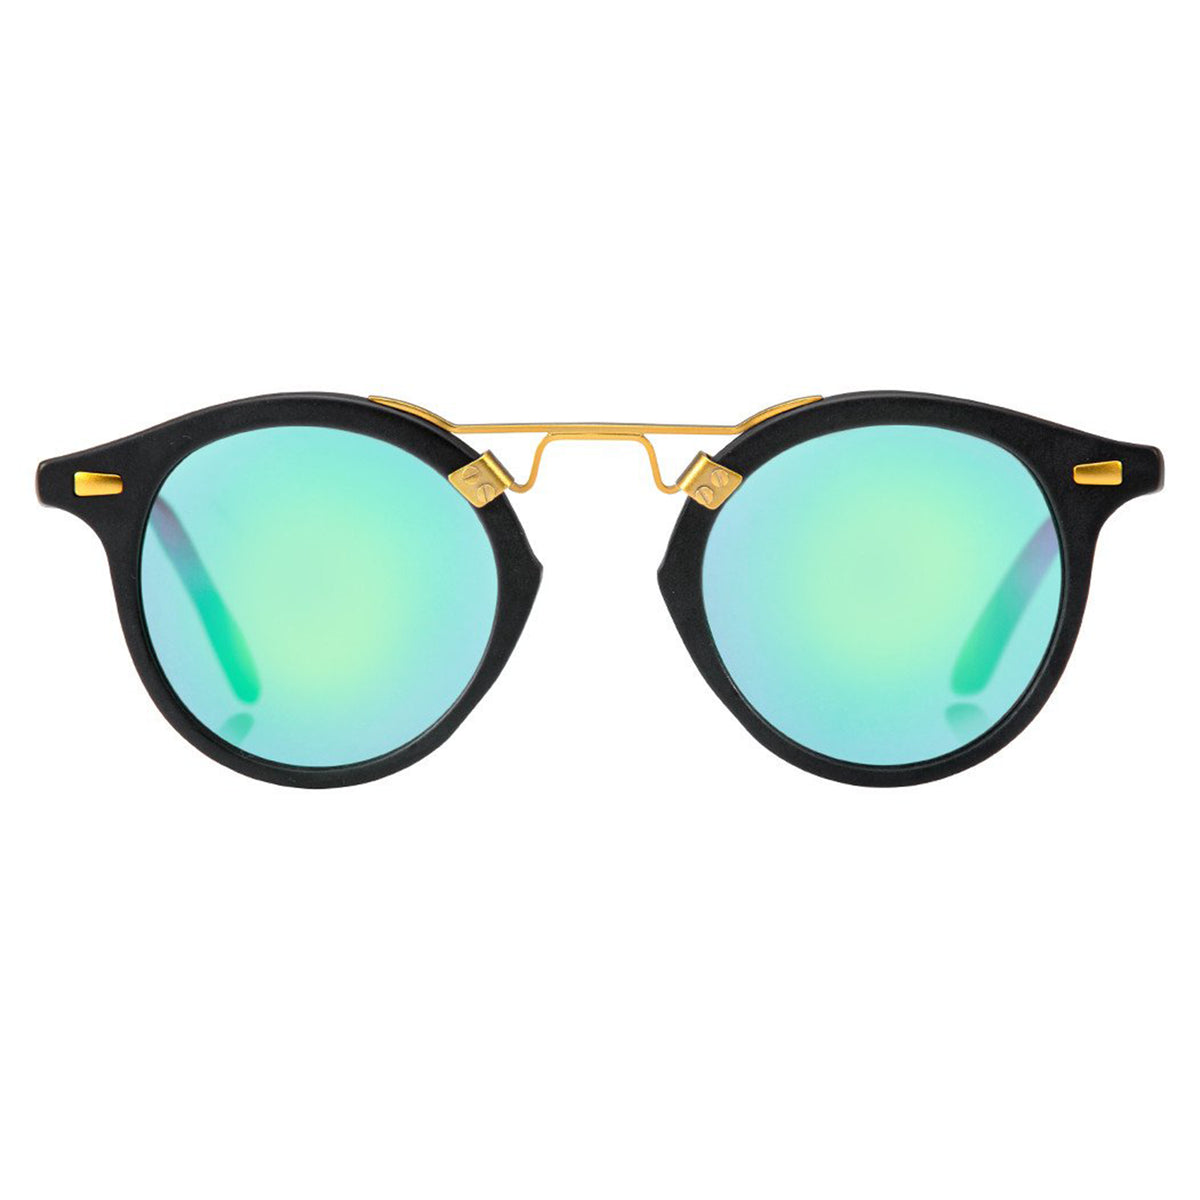 Blue and Green Sunglasses